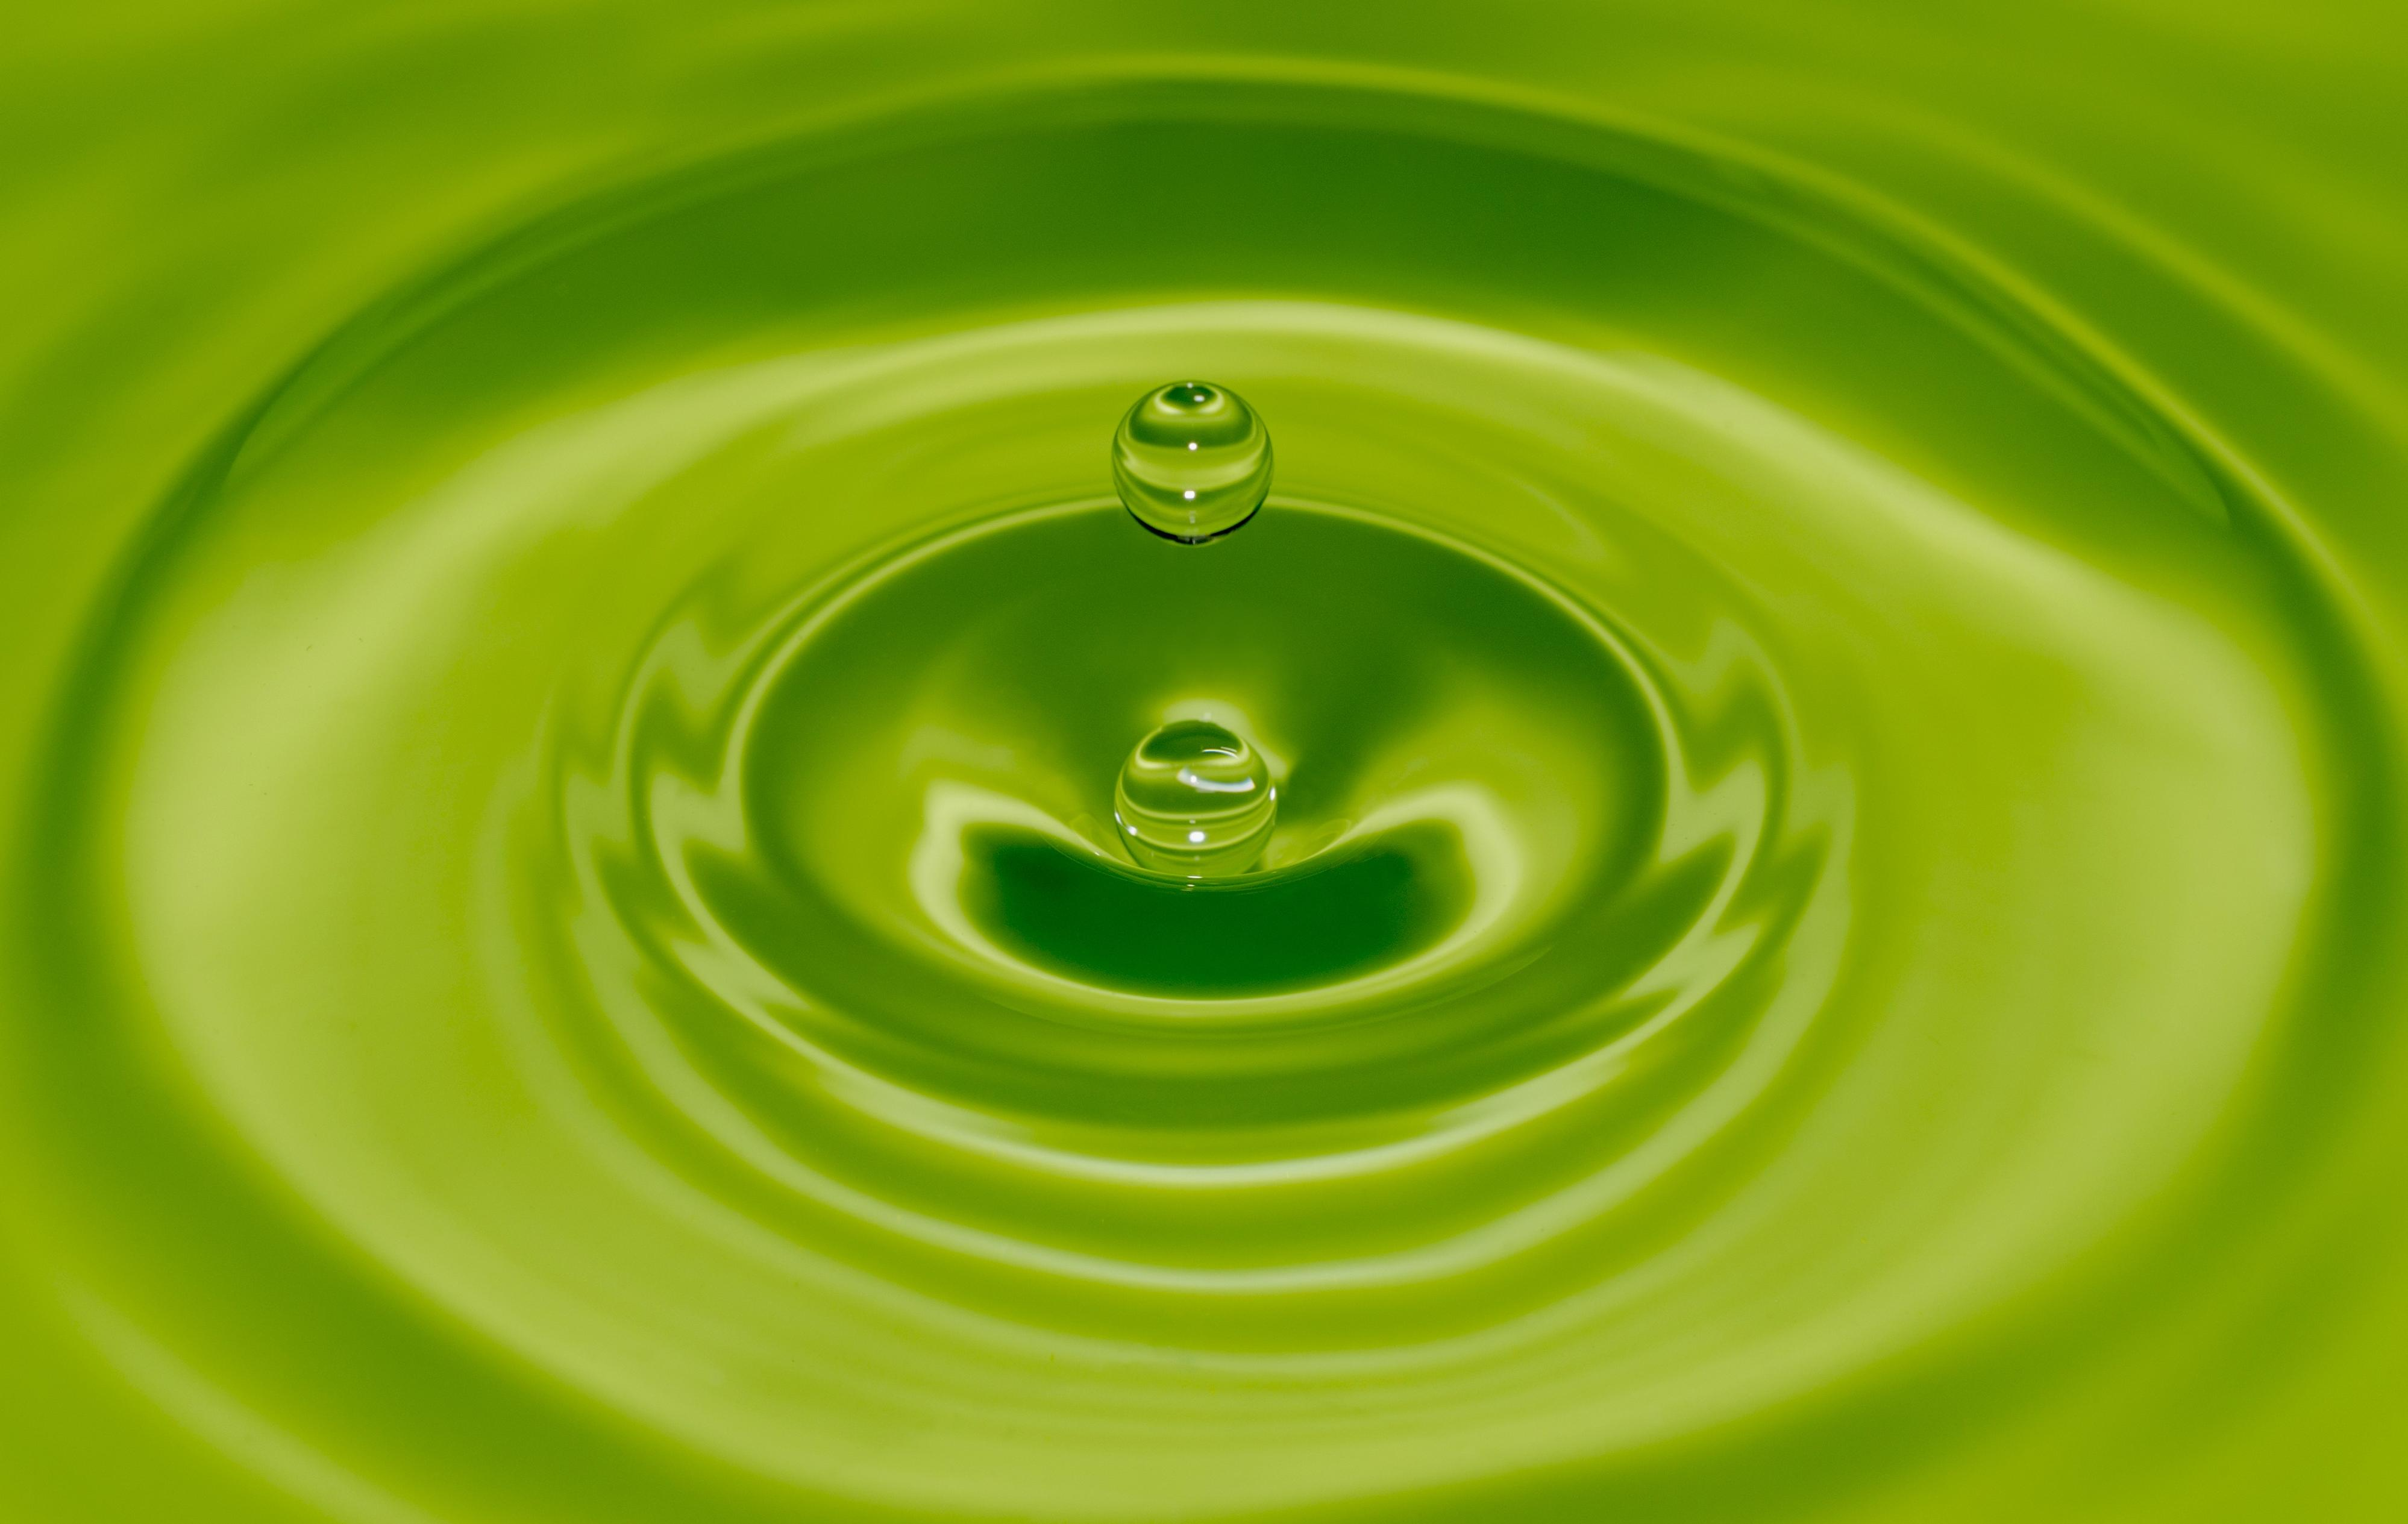 Free picture droplet abstract rain wet liquid bubble green